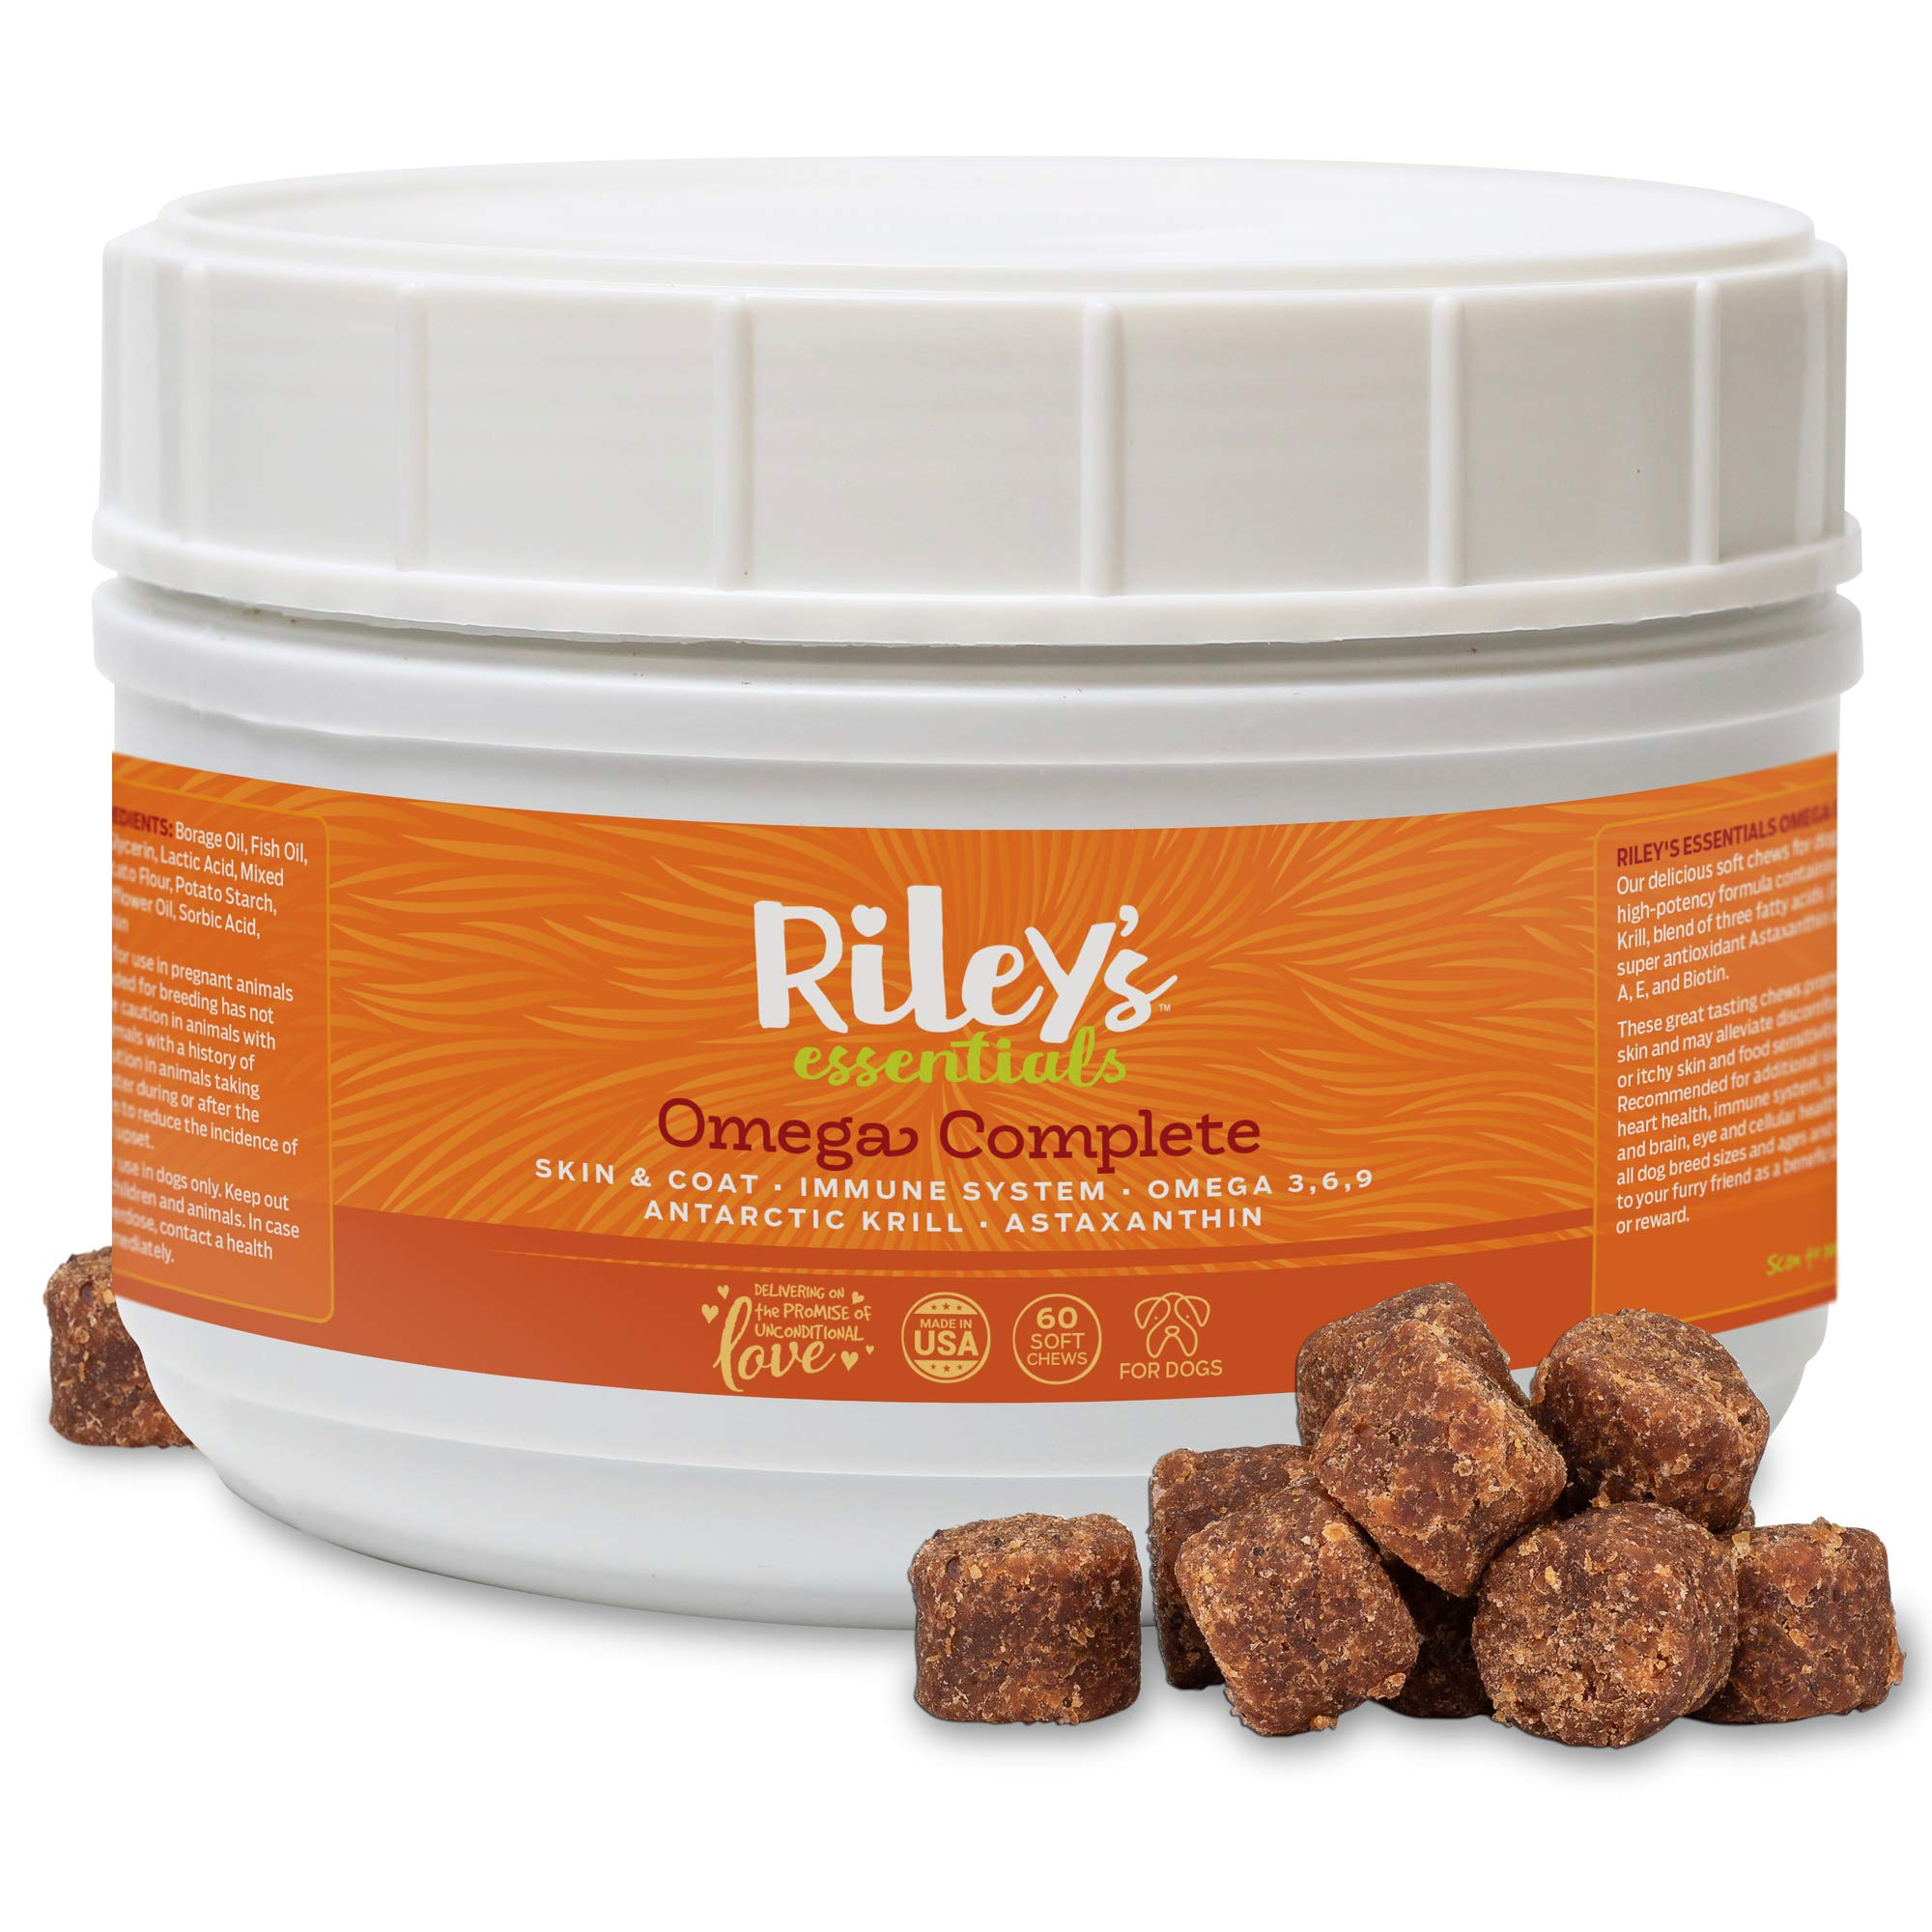 Riley's Omega 3 for Dogs Itching Skin Relief Without Dog Allergy Medicine, Krill Fish Oil Supplement for Dogs with Omega 3 6 9, Astaxanthin for a Healthy Skin and Coat & Immune System - 60 Soft Chews by Riley's